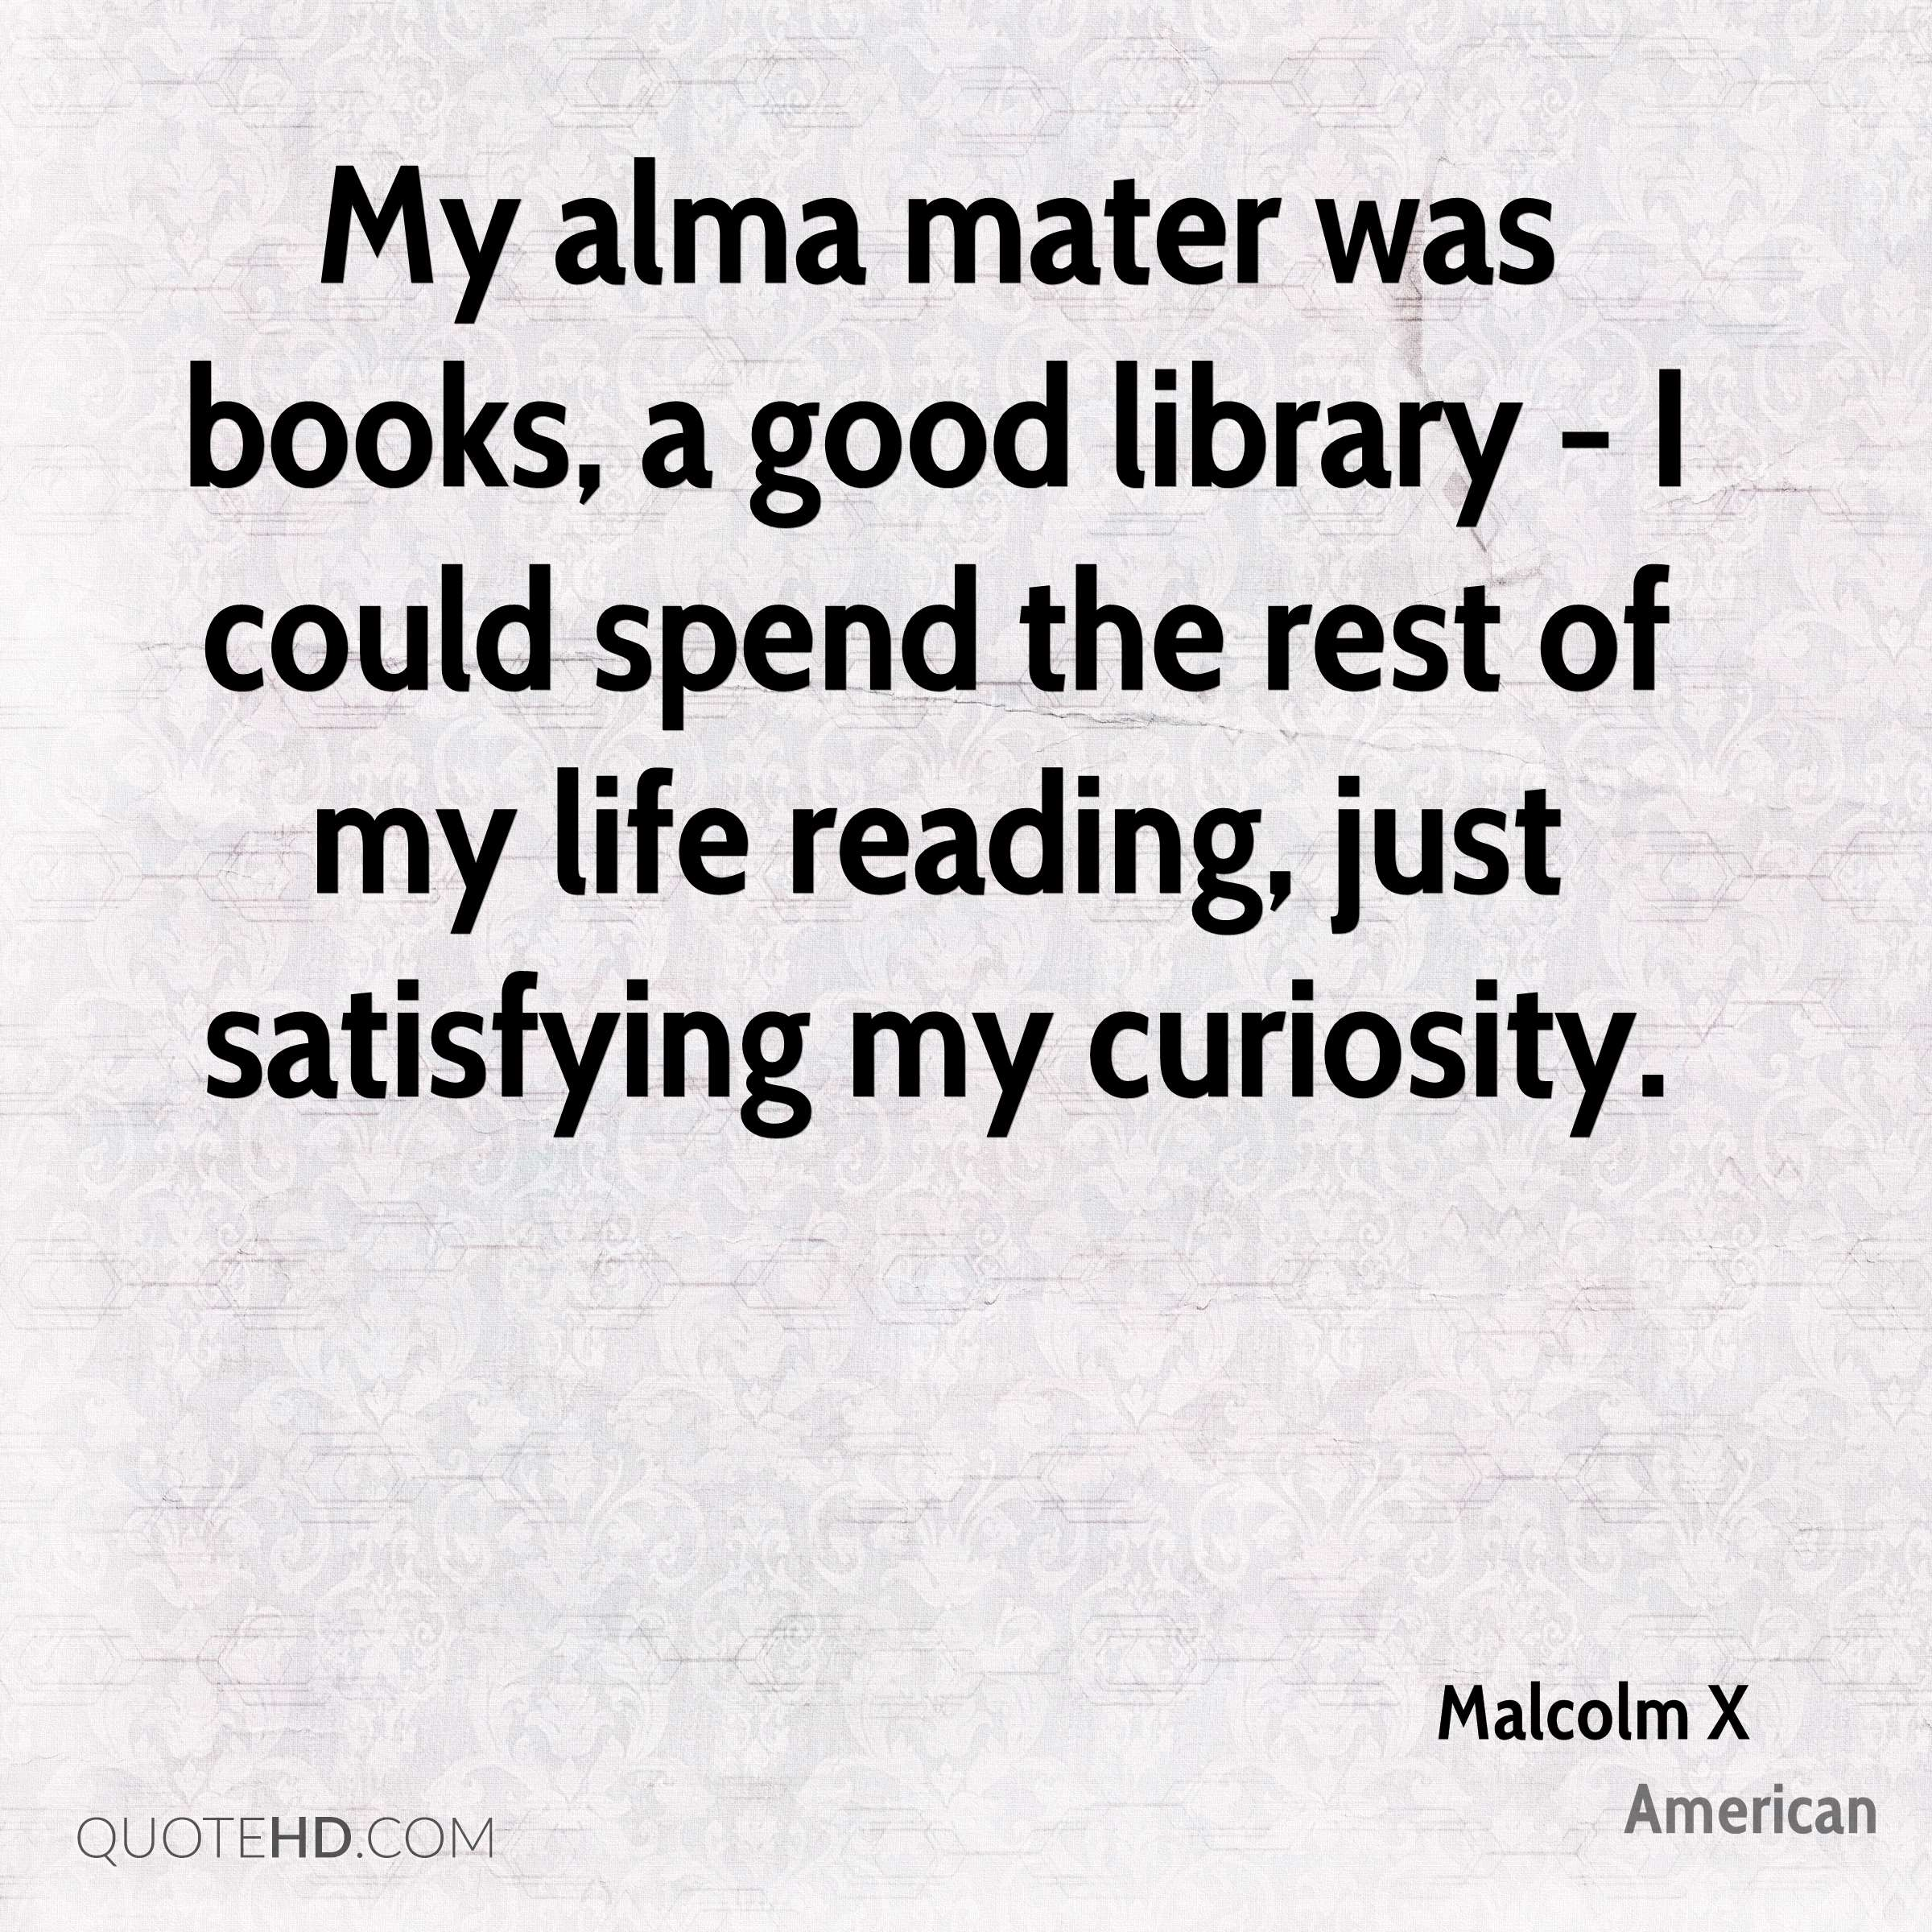 My alma mater was books, a good library - I could spend the rest of my life reading, just satisfying my curiosity.